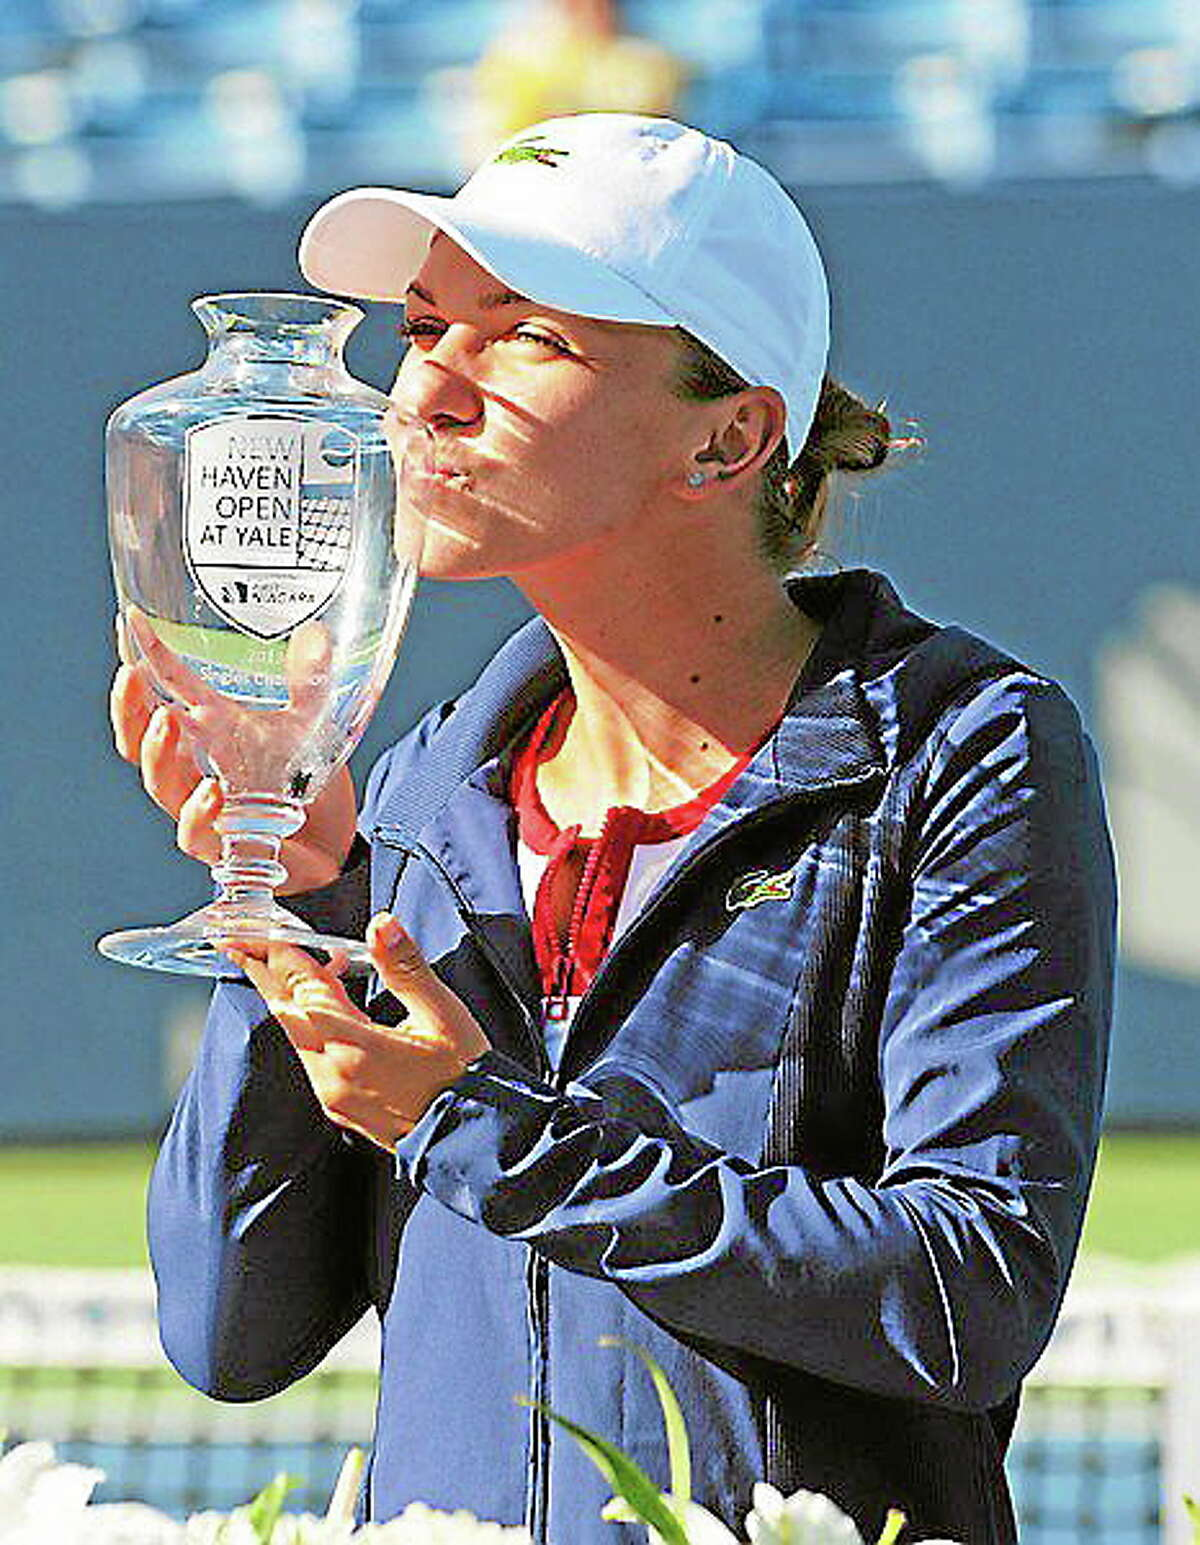 Simona Halep kisses the winner's trophy at the New Haven Open on Aug. 24 after defeating Petra Kvitova 6-2, 6-2.